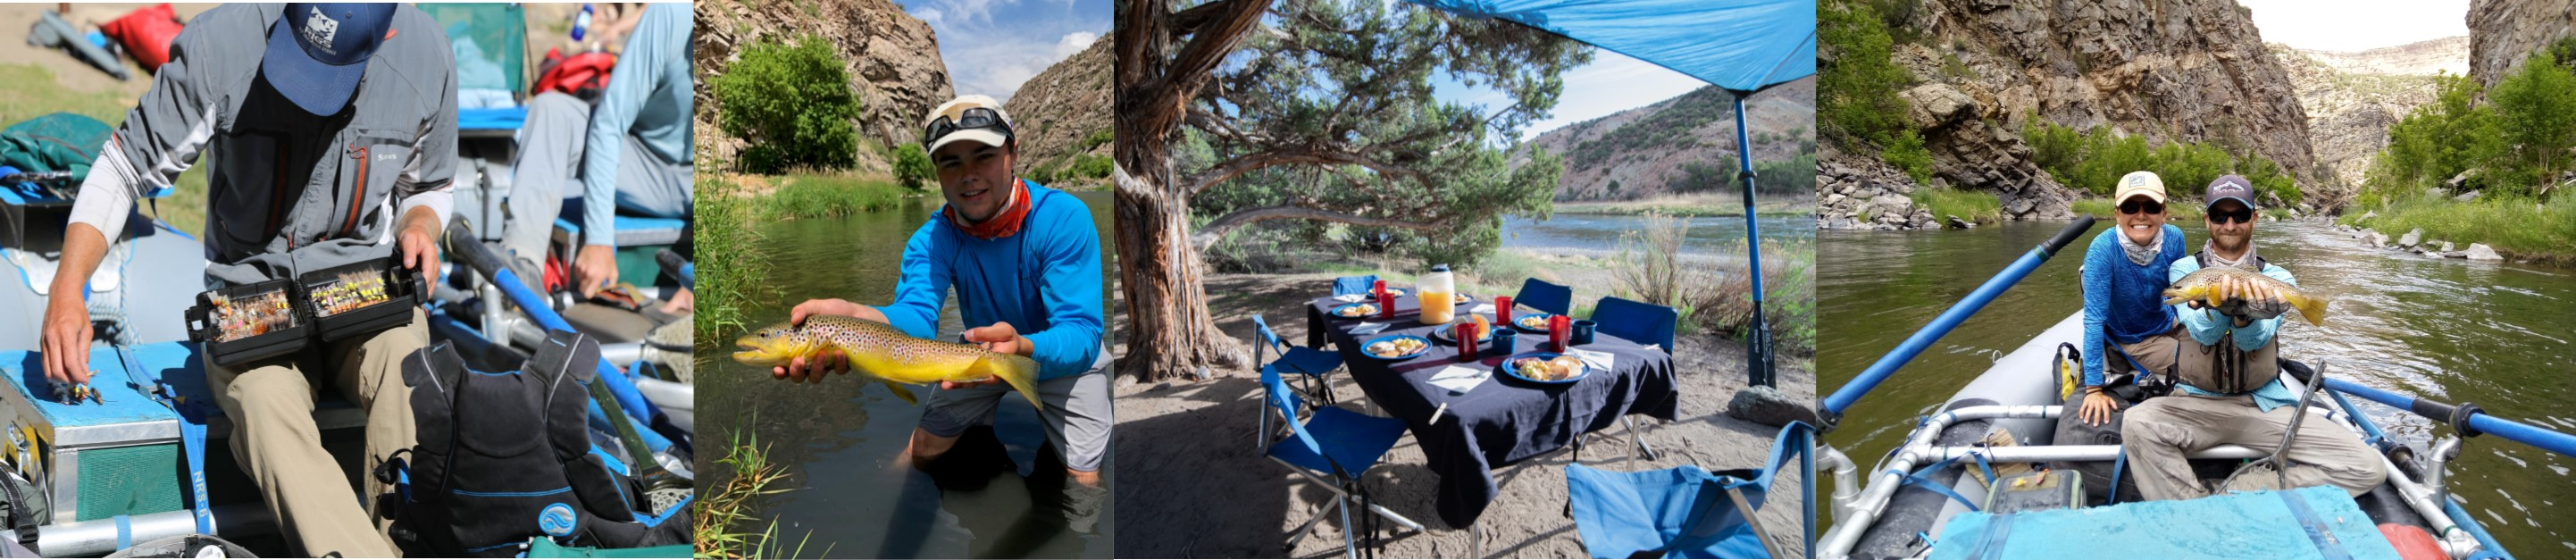 Deluxe Float Fishing Trip Down the Gunnison Gorge